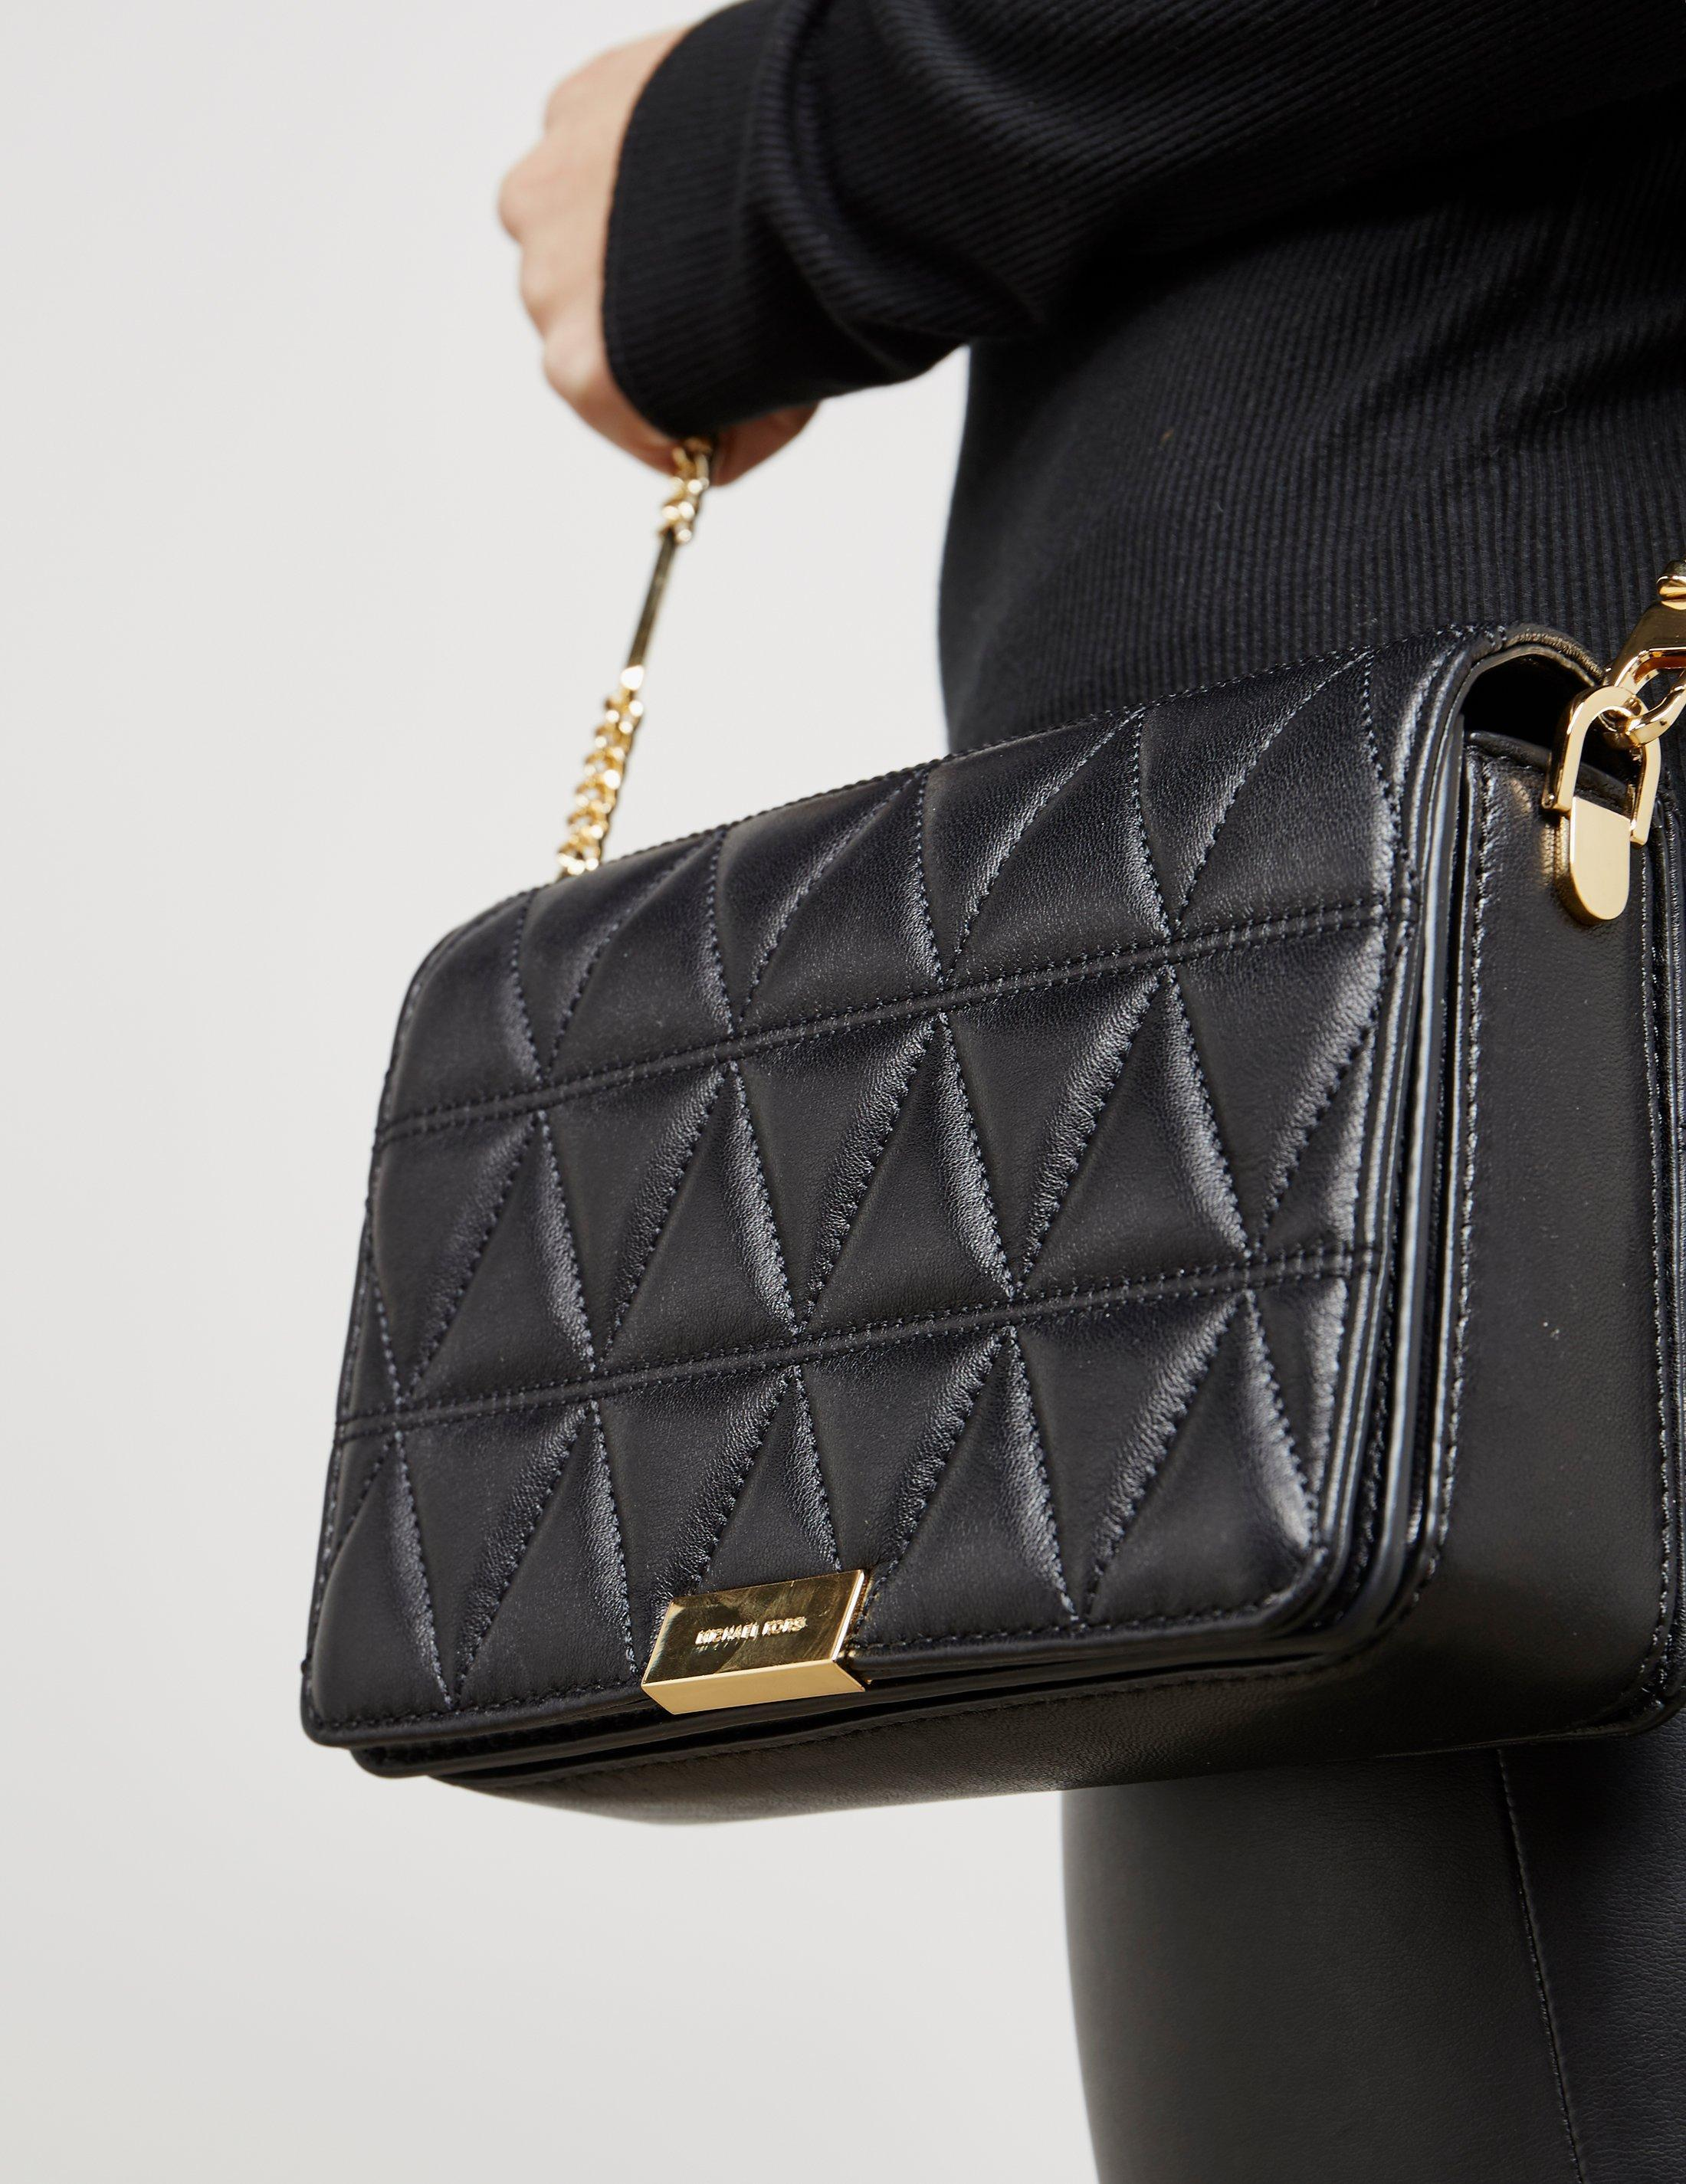 34abcfb64f9b59 Gallery. Previously sold at: Tessuti UK · Women's Michael Kors Quilted Bag  ...